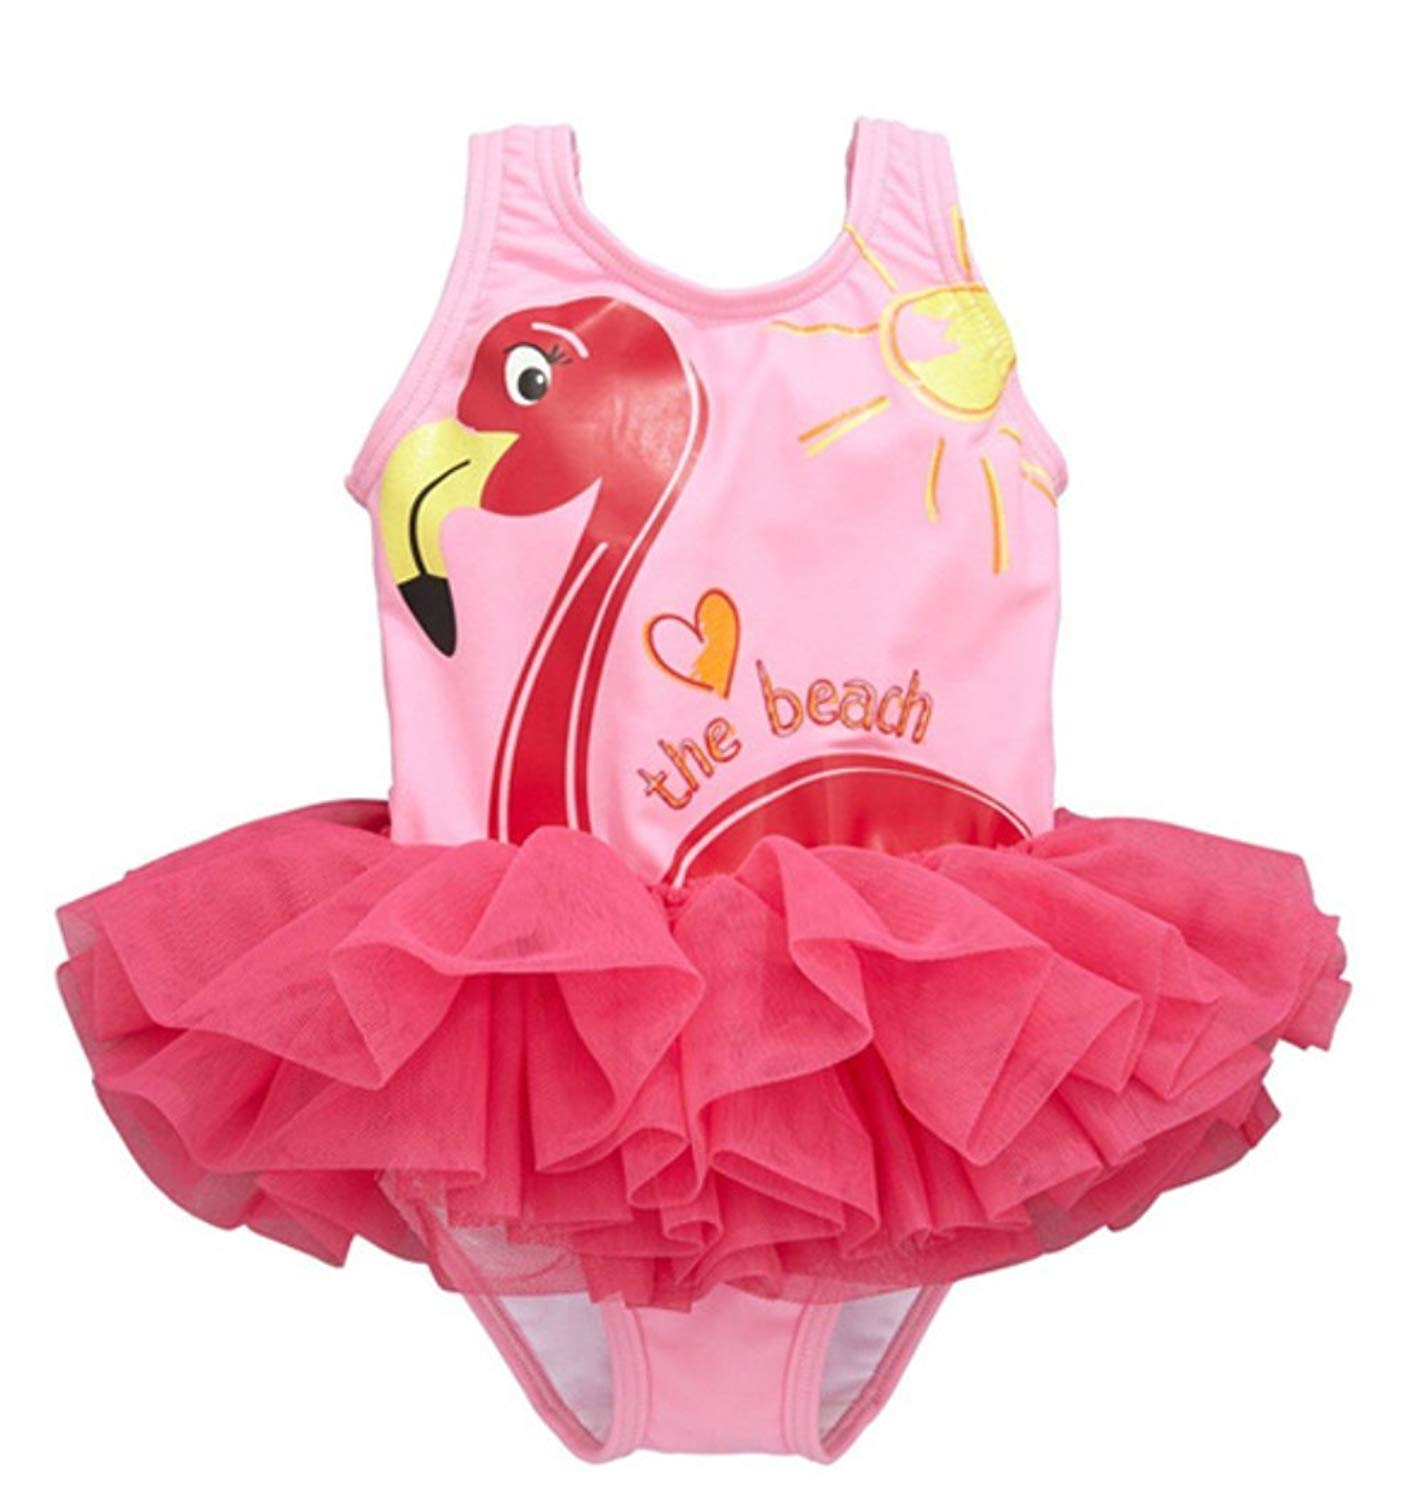 ad265d2069f46 Get Quotations · Carkoo Baby Girls One Piece Swimsuit Cute Swan Bathing  Suit Tutu Dress Swimwear